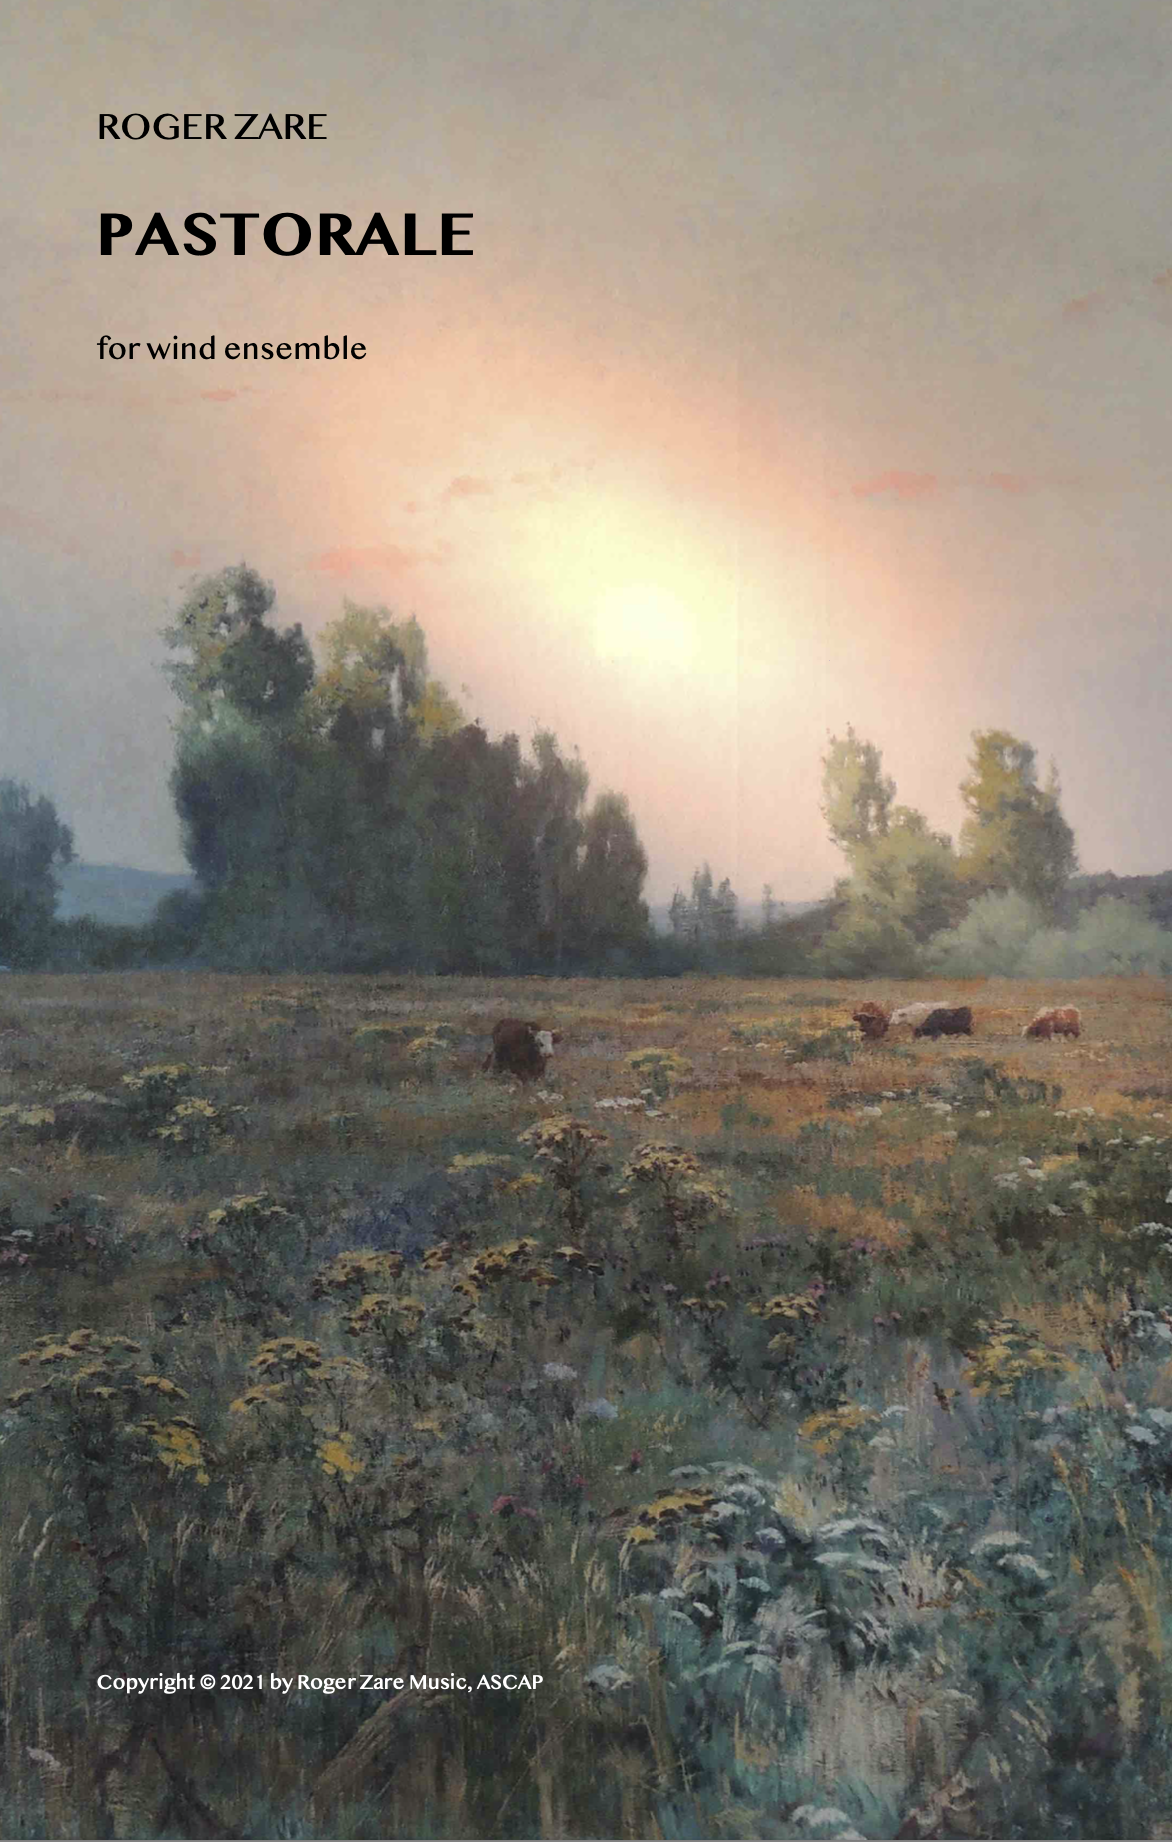 Pastorale by Roger Zare